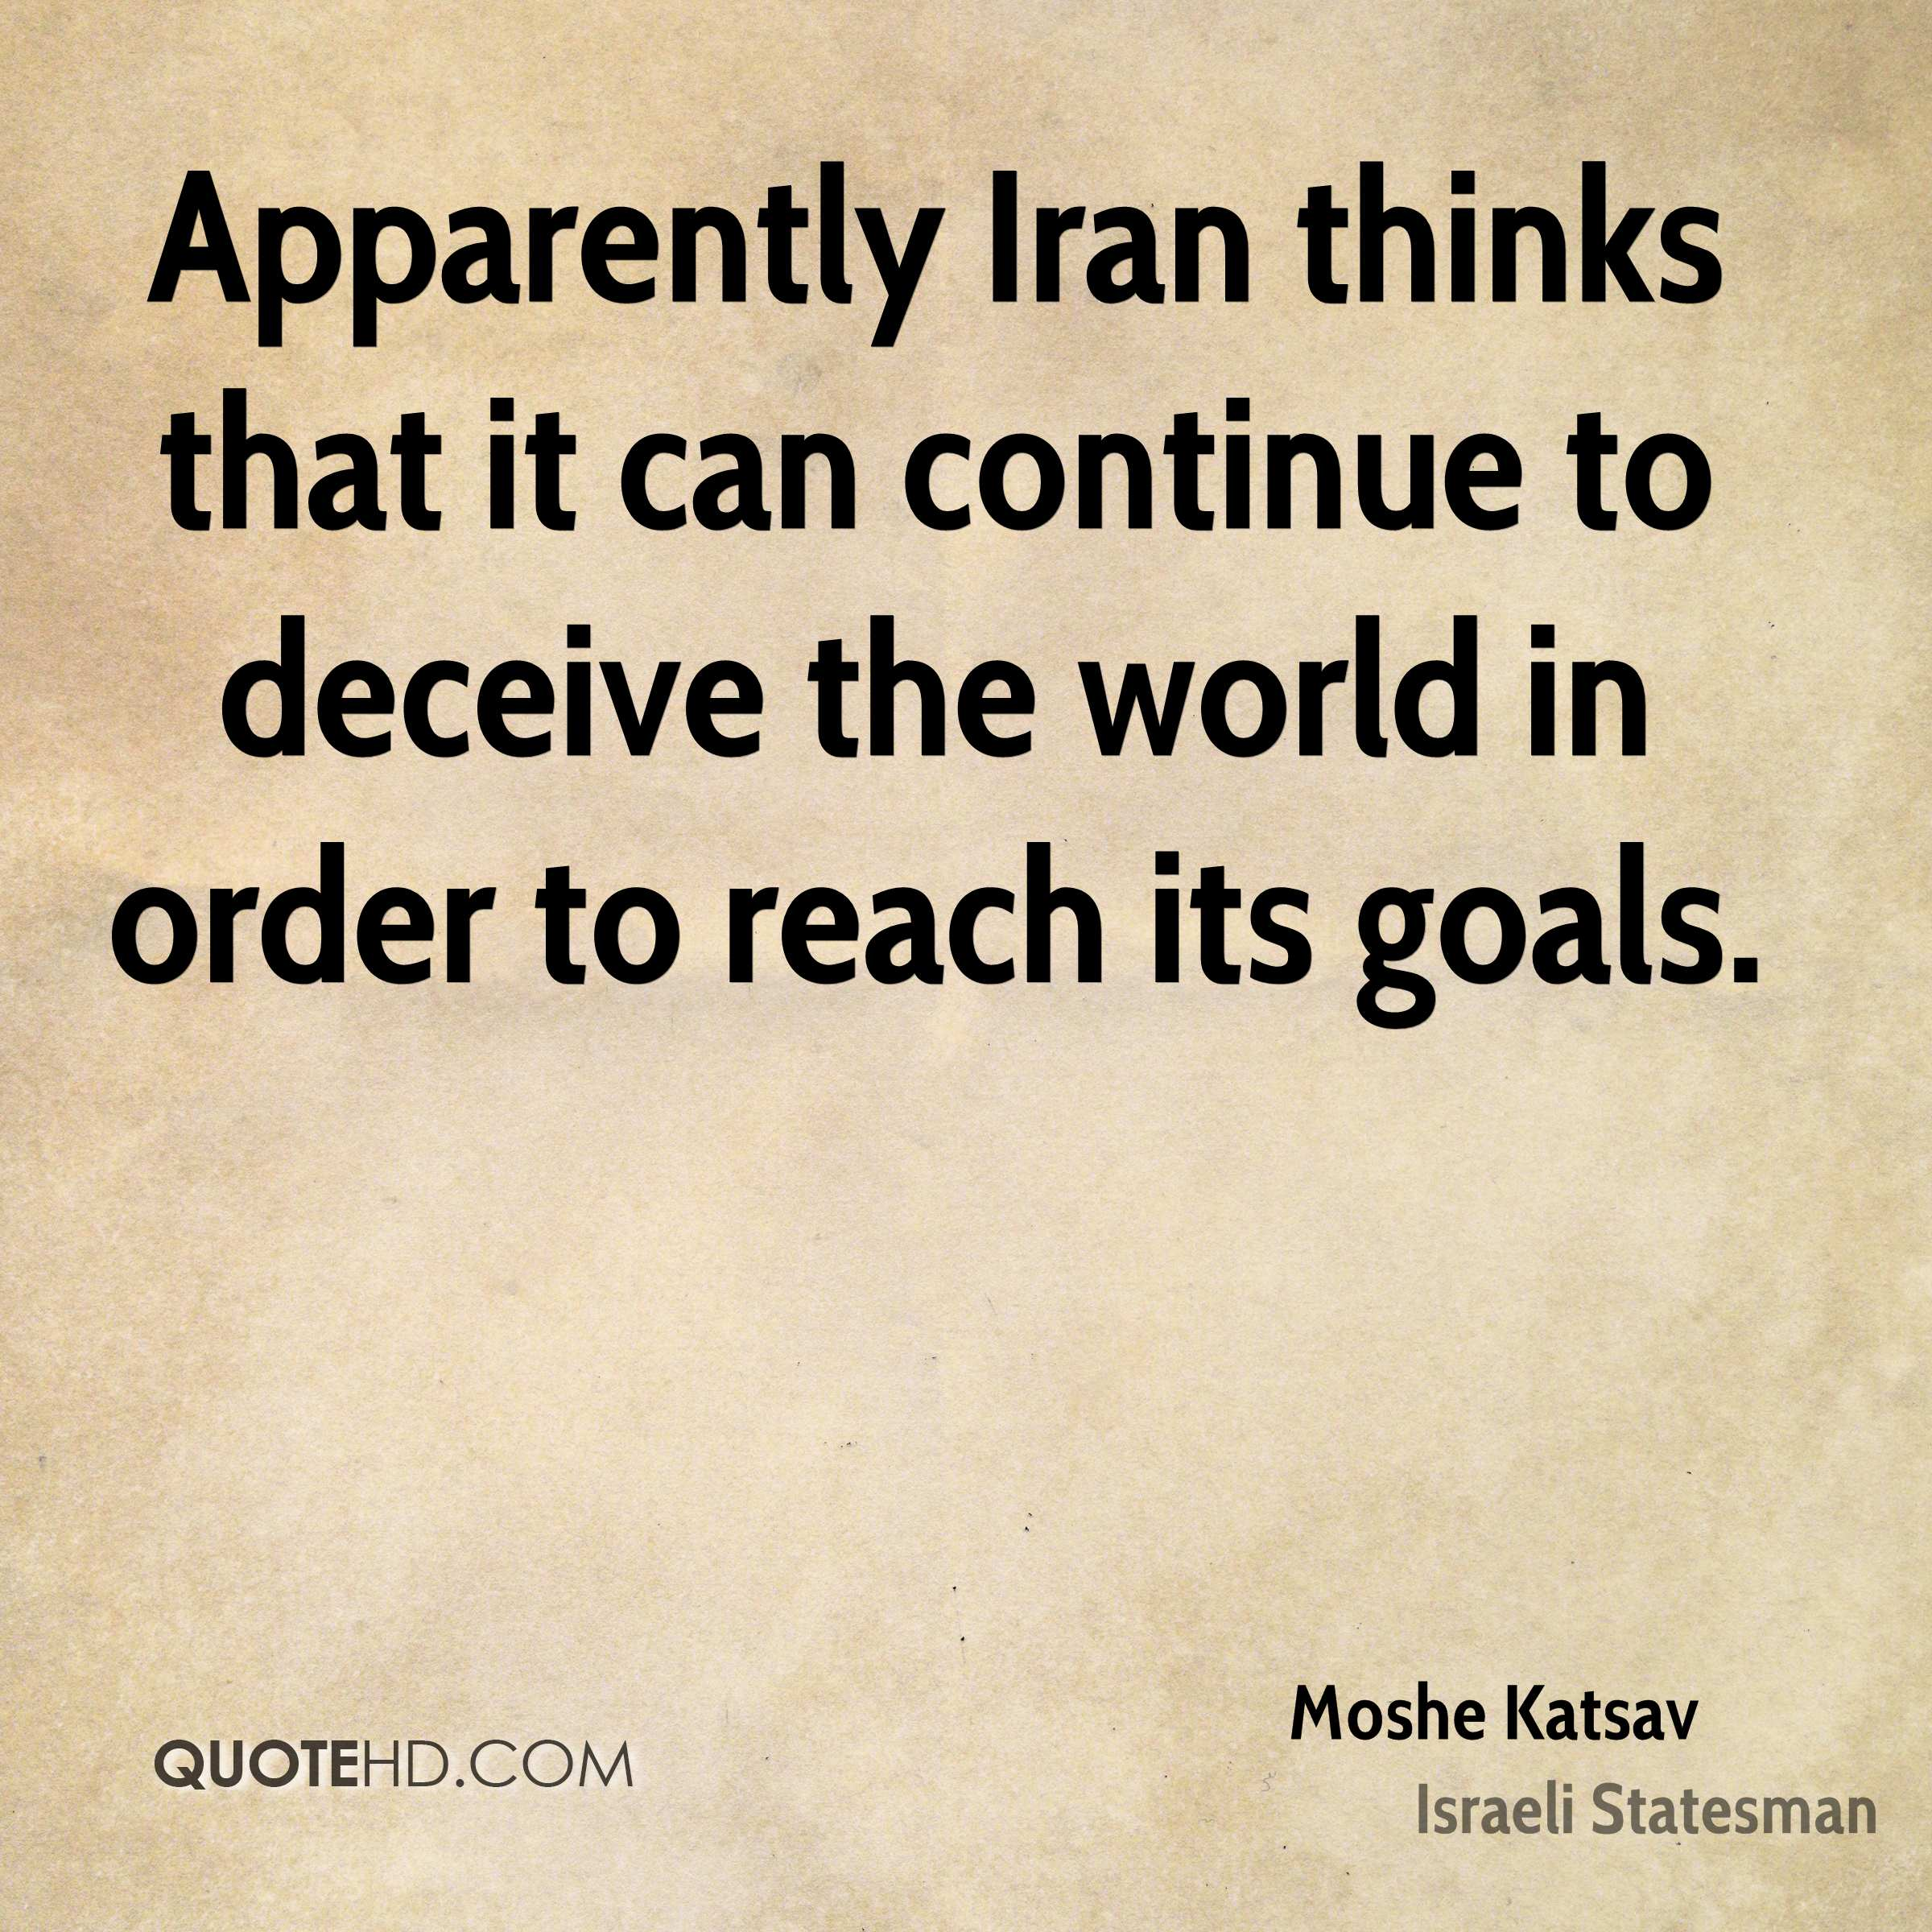 Apparently Iran thinks that it can continue to deceive the world in order to reach its goals.